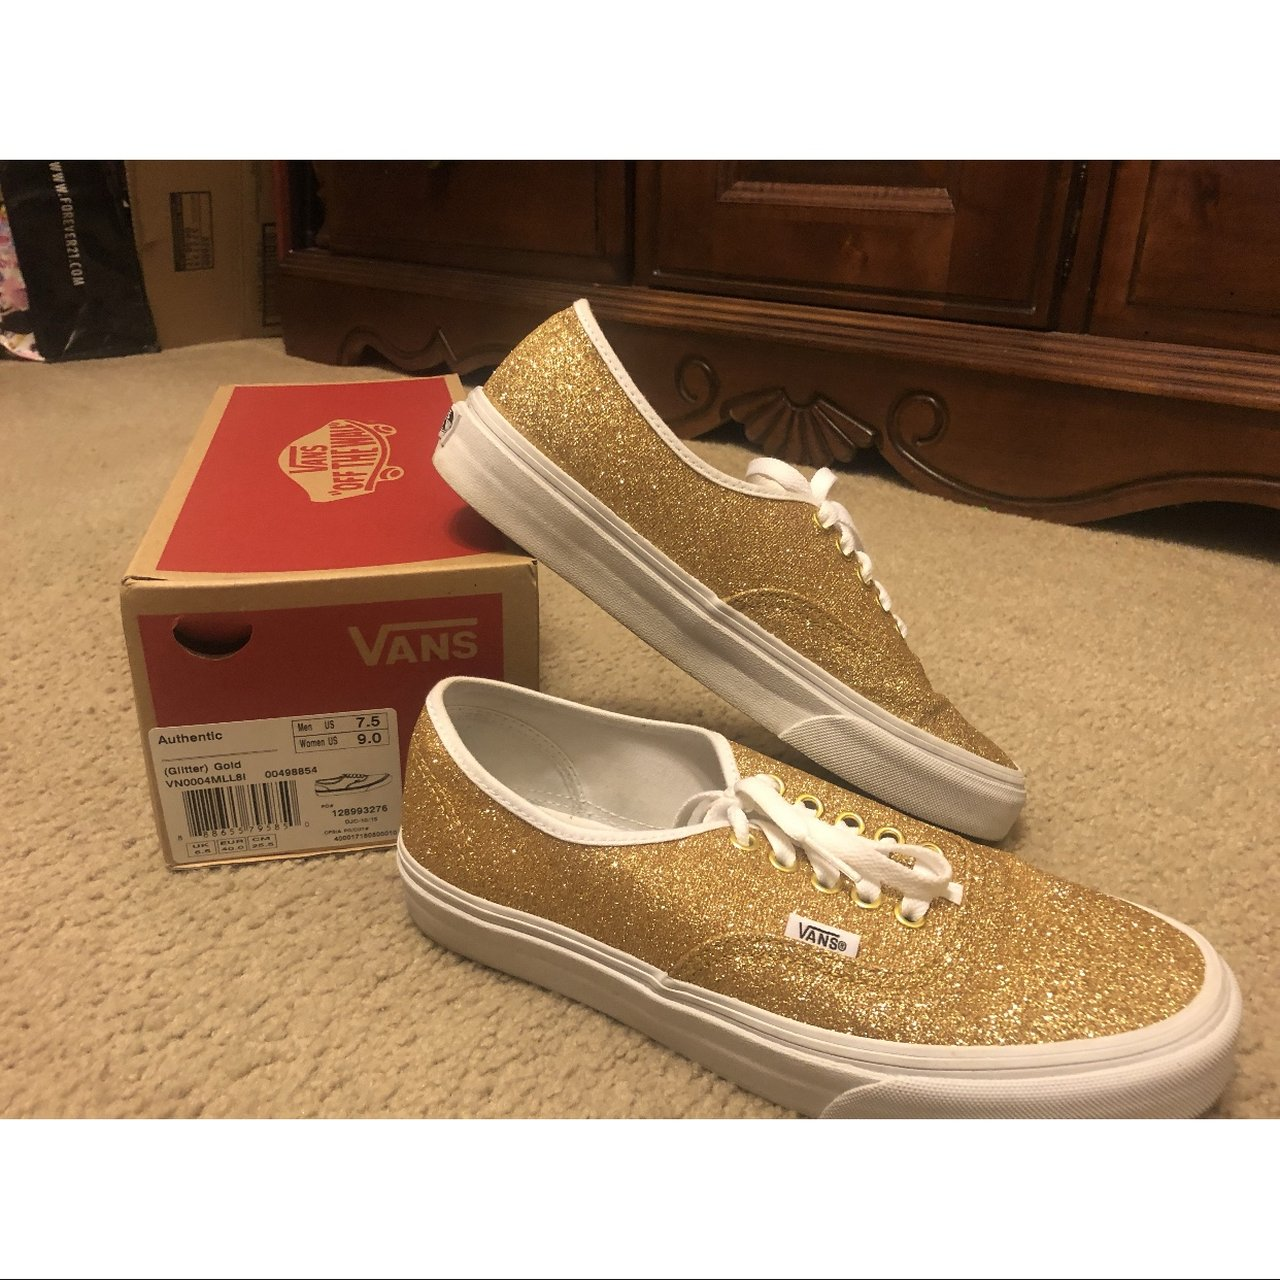 a56bc186fc56 Vans Authentic in gold glitter. Worn once. Why only have in - Depop